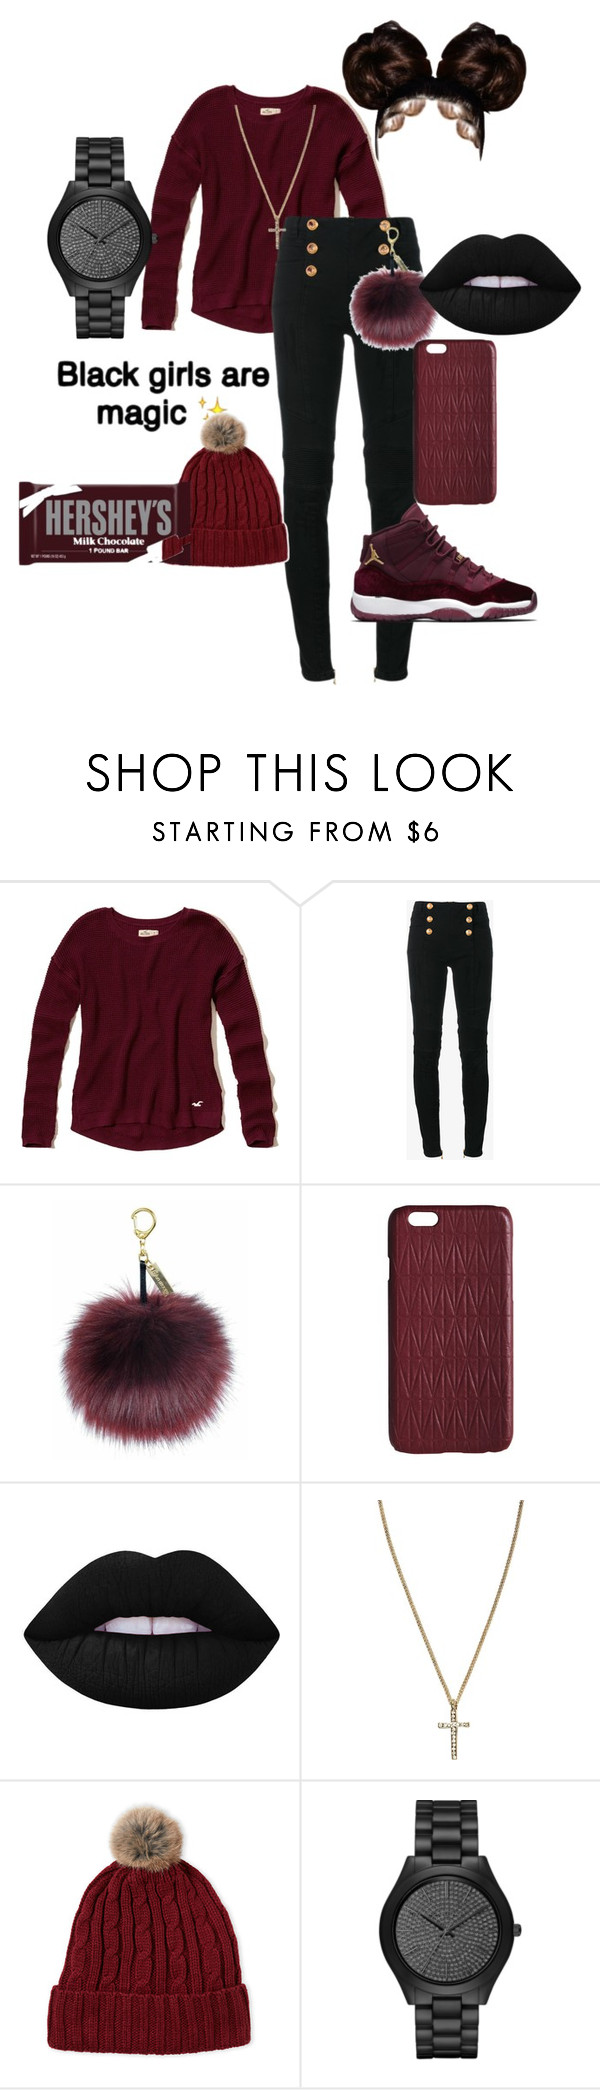 """A real savage woman"" by qiana776 ❤ liked on Polyvore featuring Hollister Co., Balmain, Helen Moore, Dagmar, Lime Crime, River Island, Hershey's and Michael Kors"